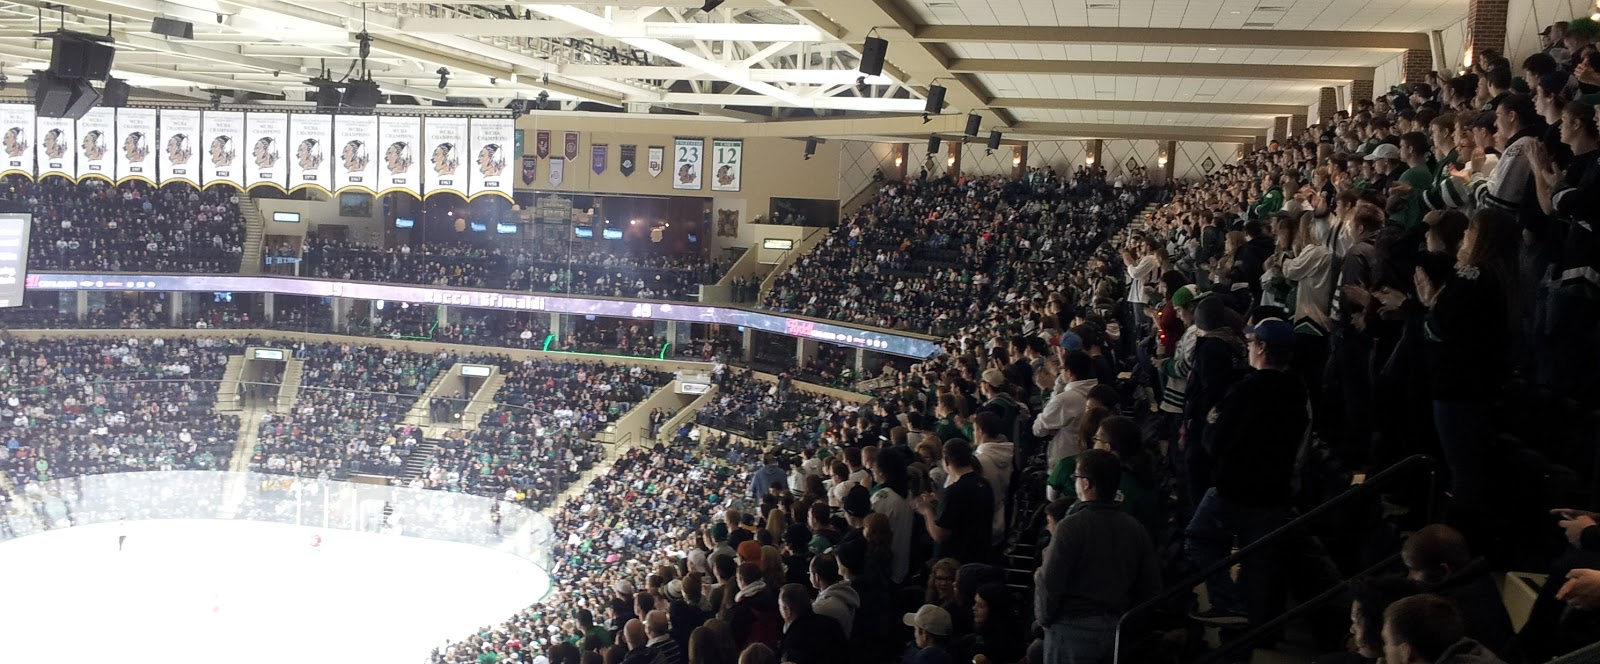 behind the mic essay this is hockey country north dakota s student section packed and standing